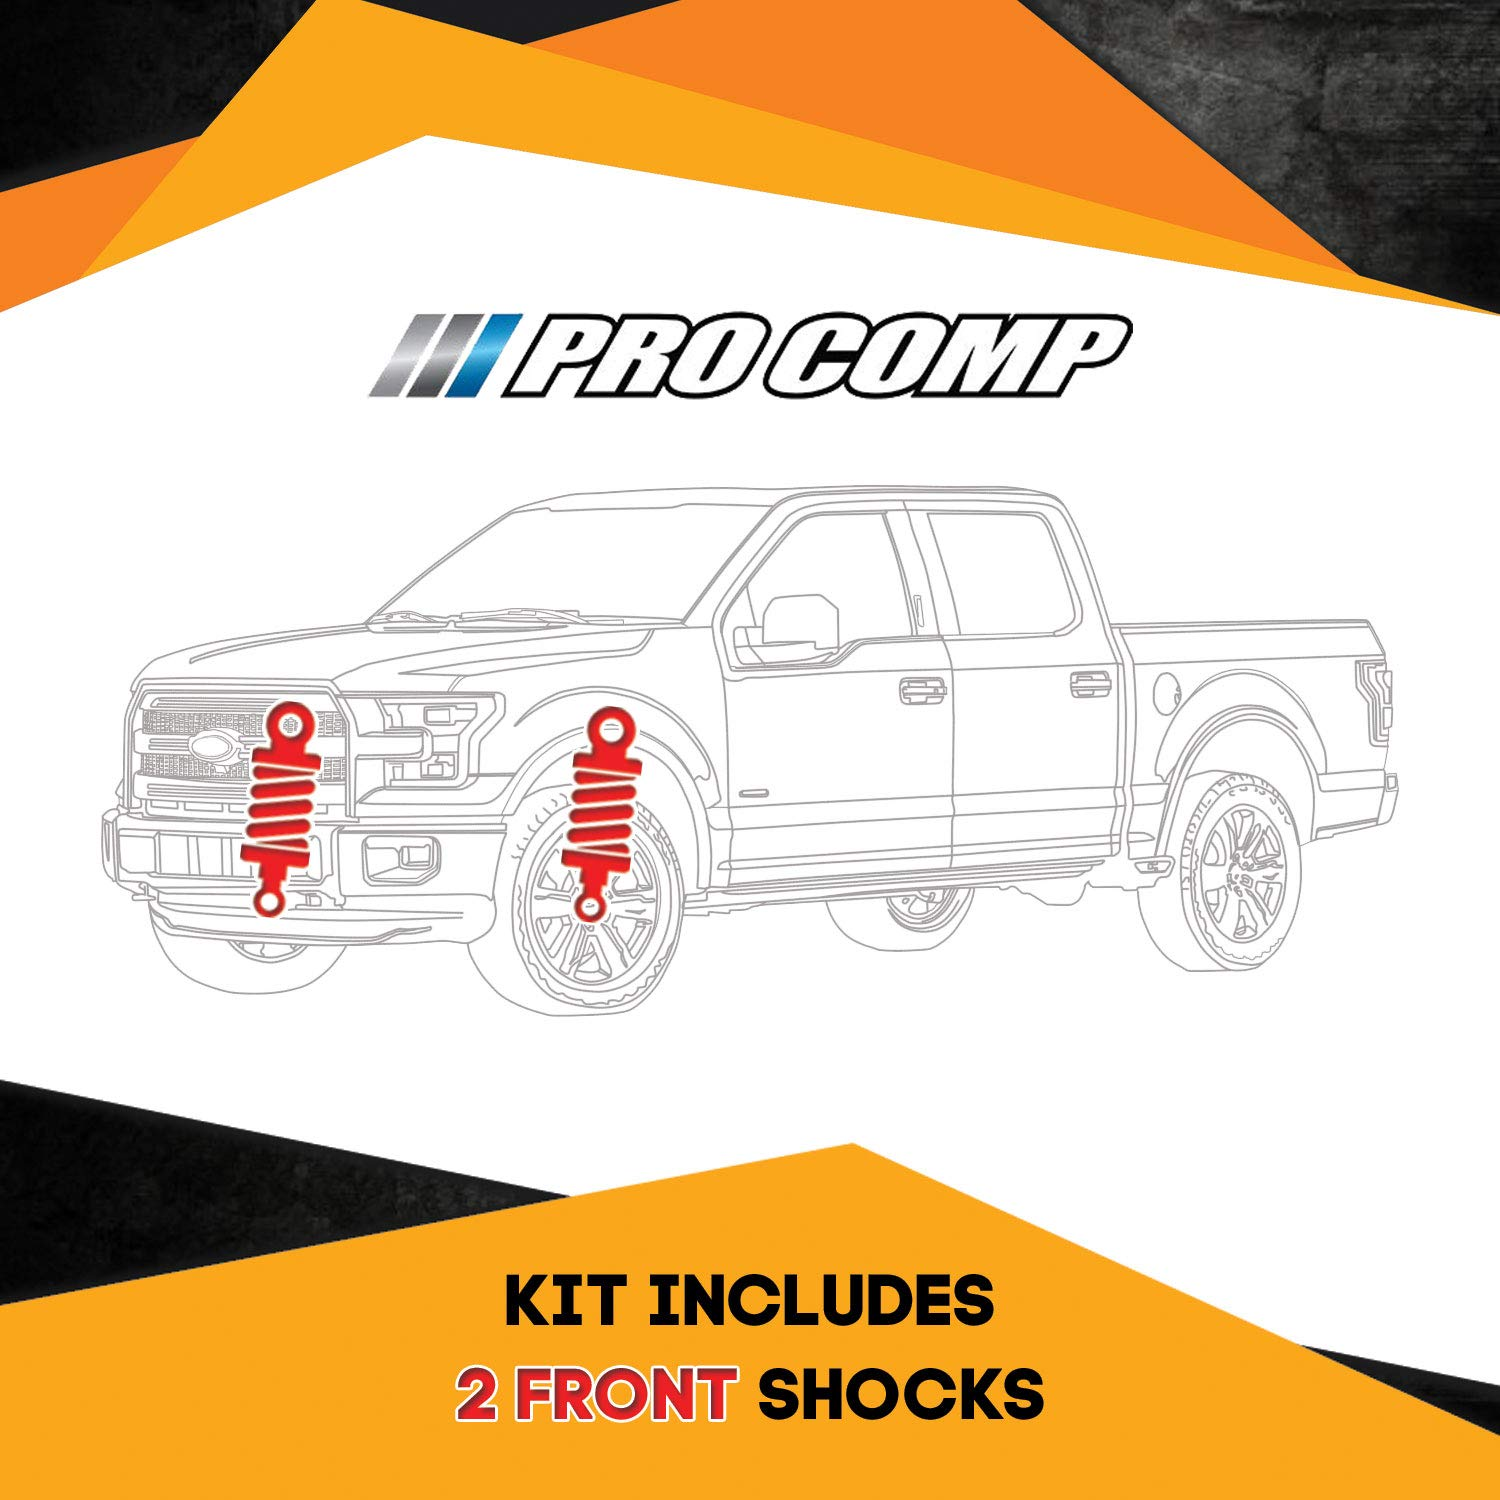 Pro Comp ES9000 2 Front Shocks Kit for GMC Sierra 92-98 4WD 0-2 inch Lift Ride Twin-tube replacement Gas Charged Shock absorbers